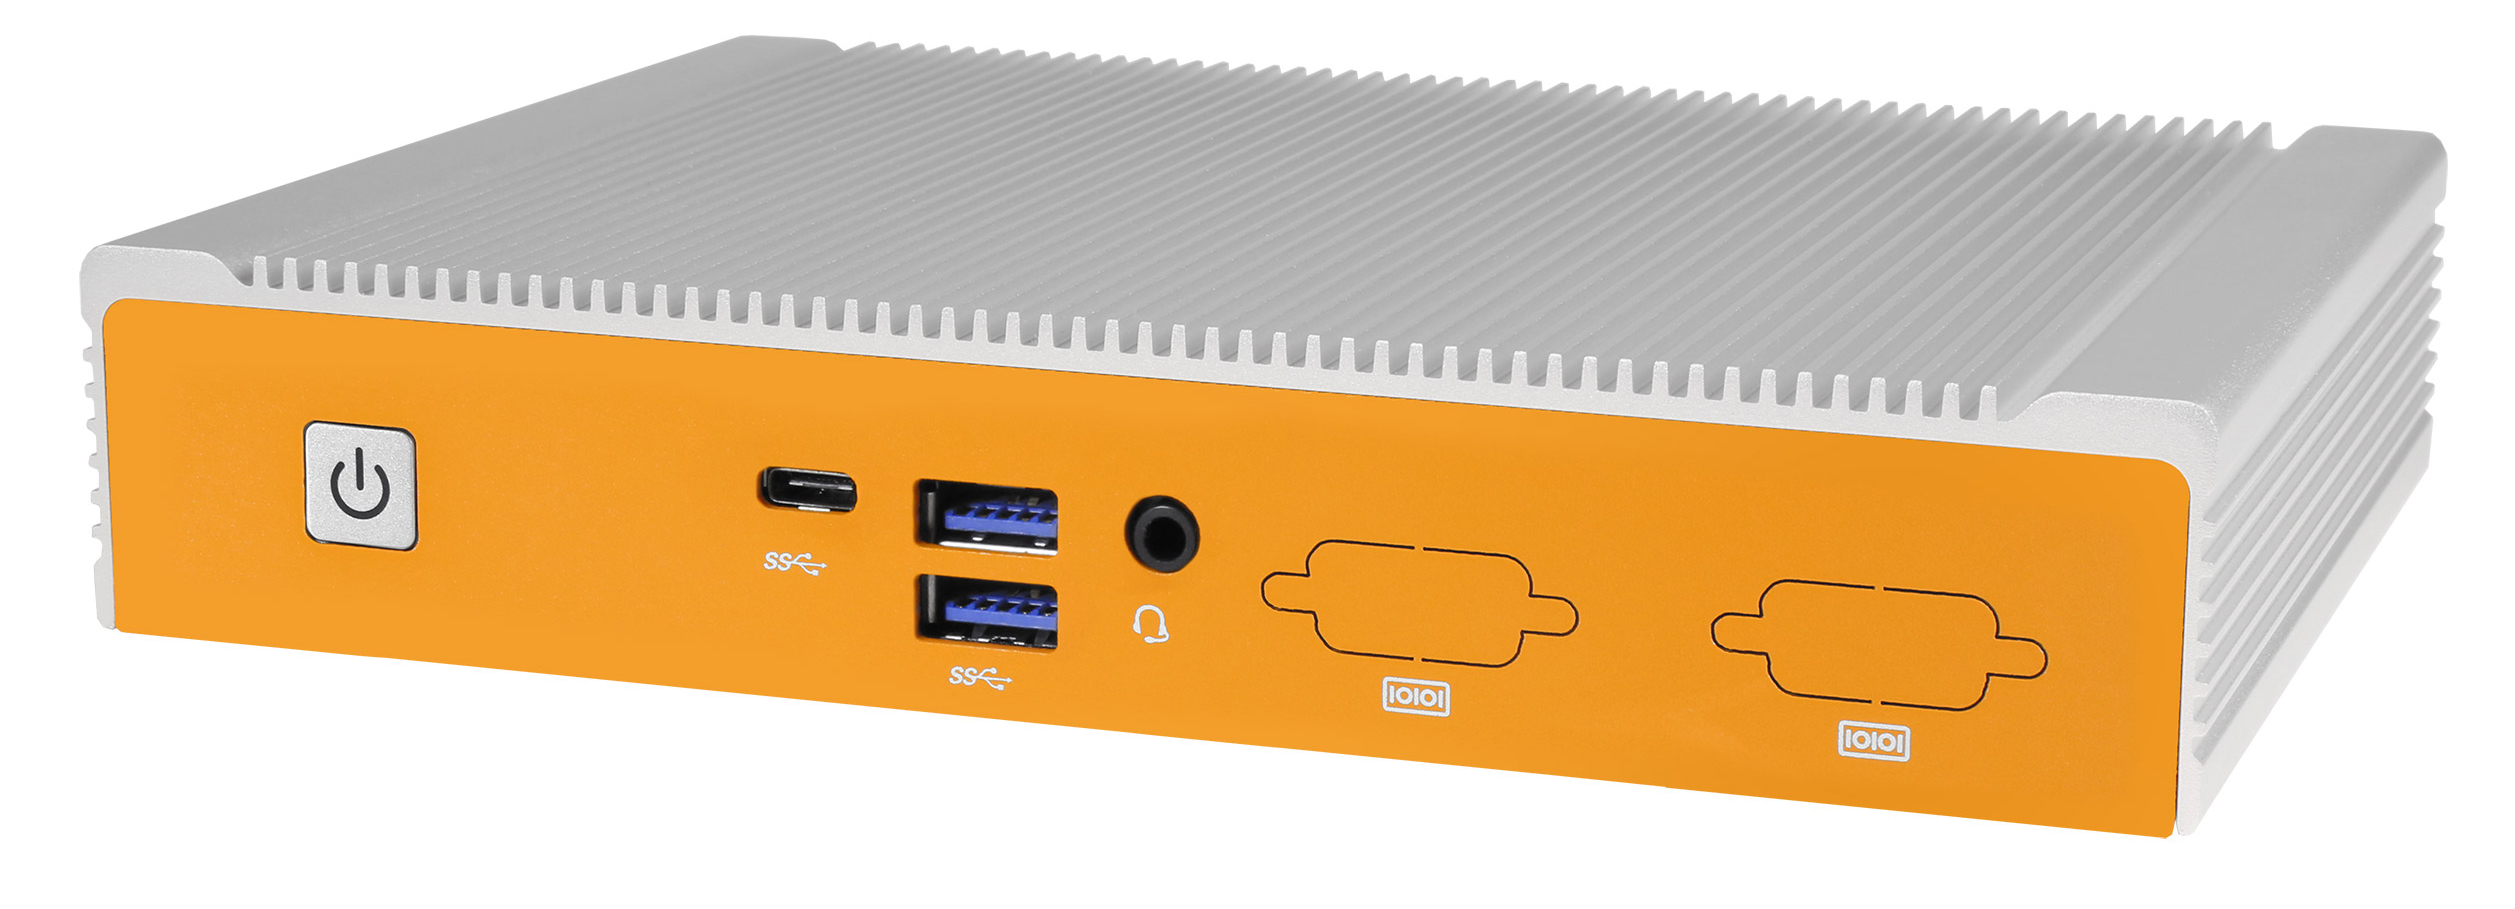 Embedded World 2018: Tiny PC is for digital signage